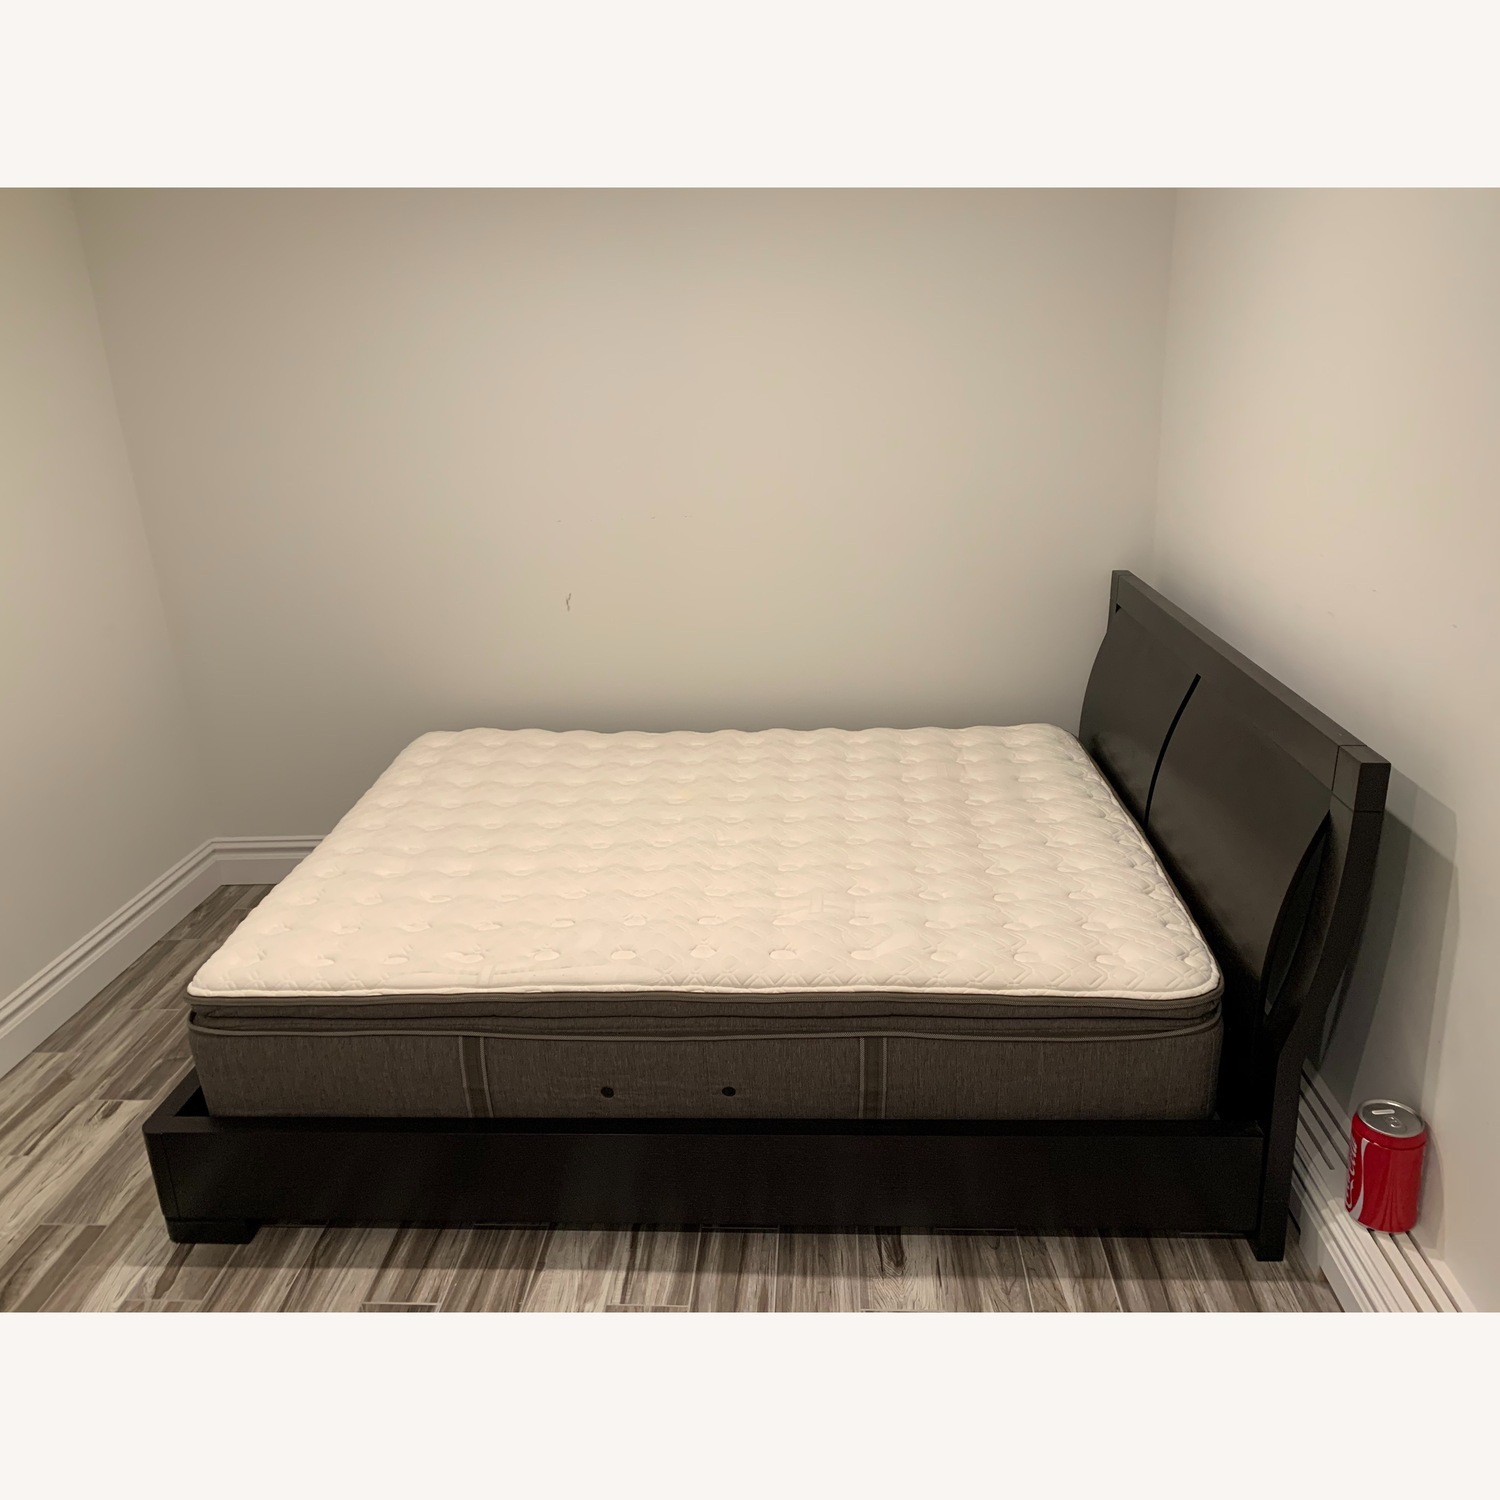 Stearns & Foster King Bed - image-1